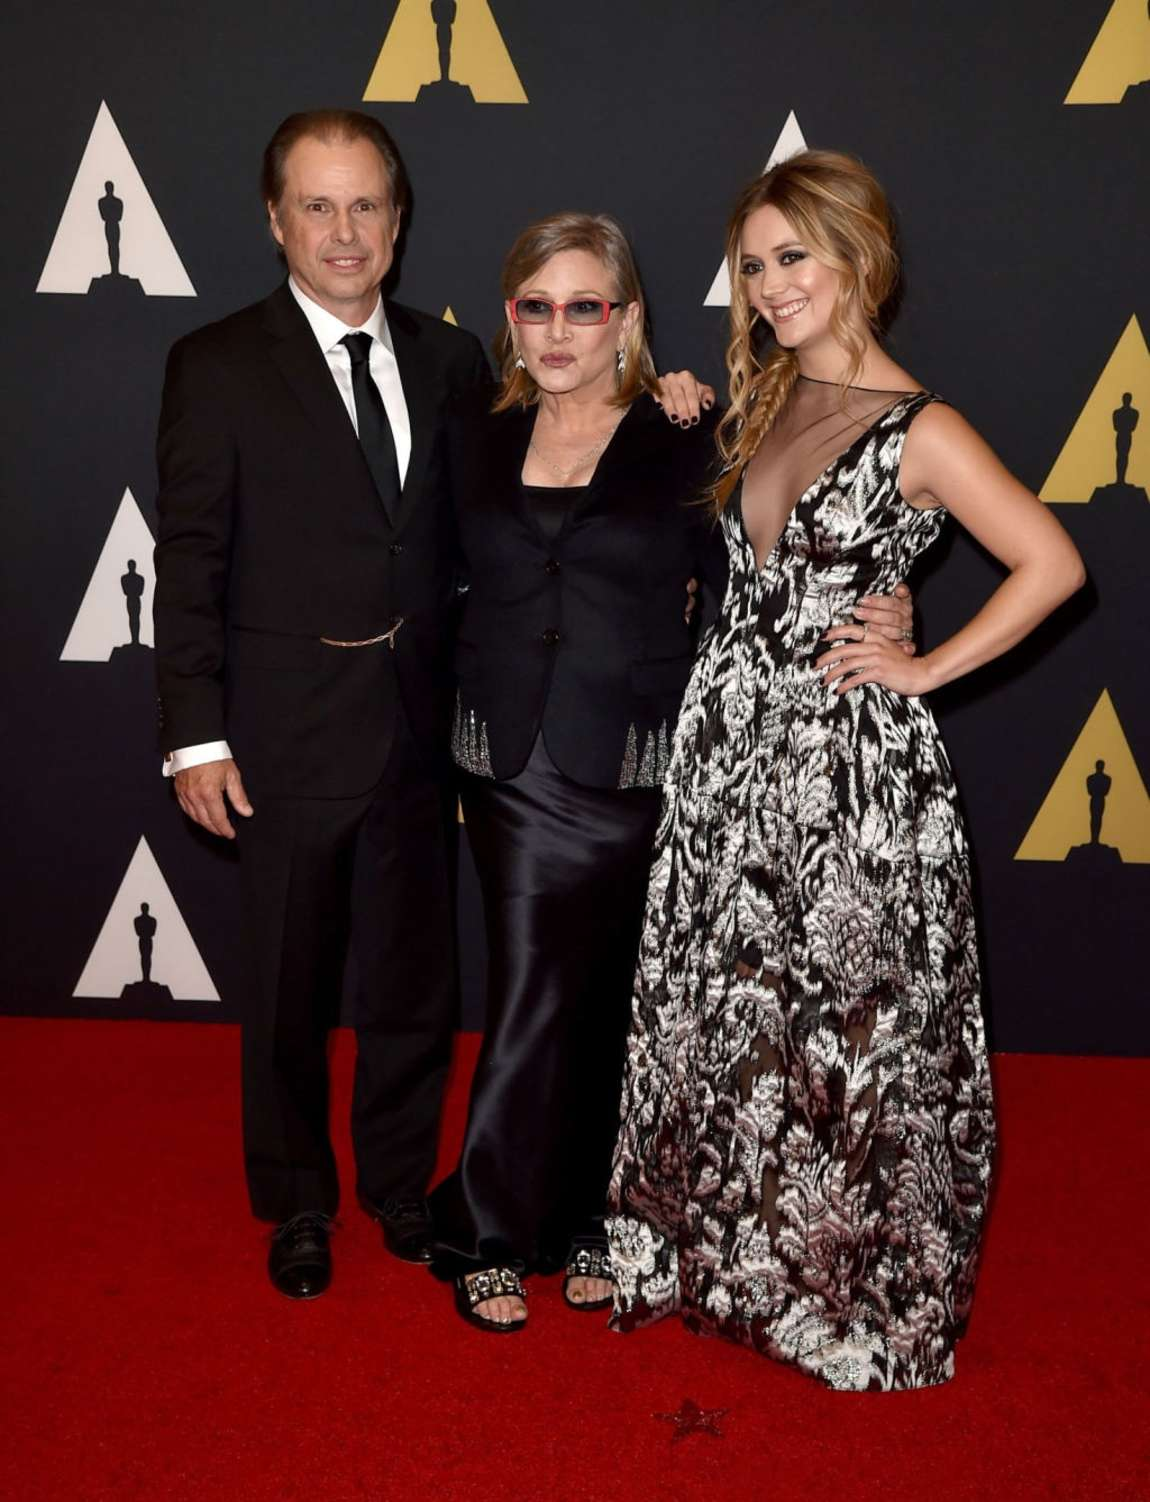 Carrie Fisher and Billie Lourd Annual Governors Awards in Hollywood